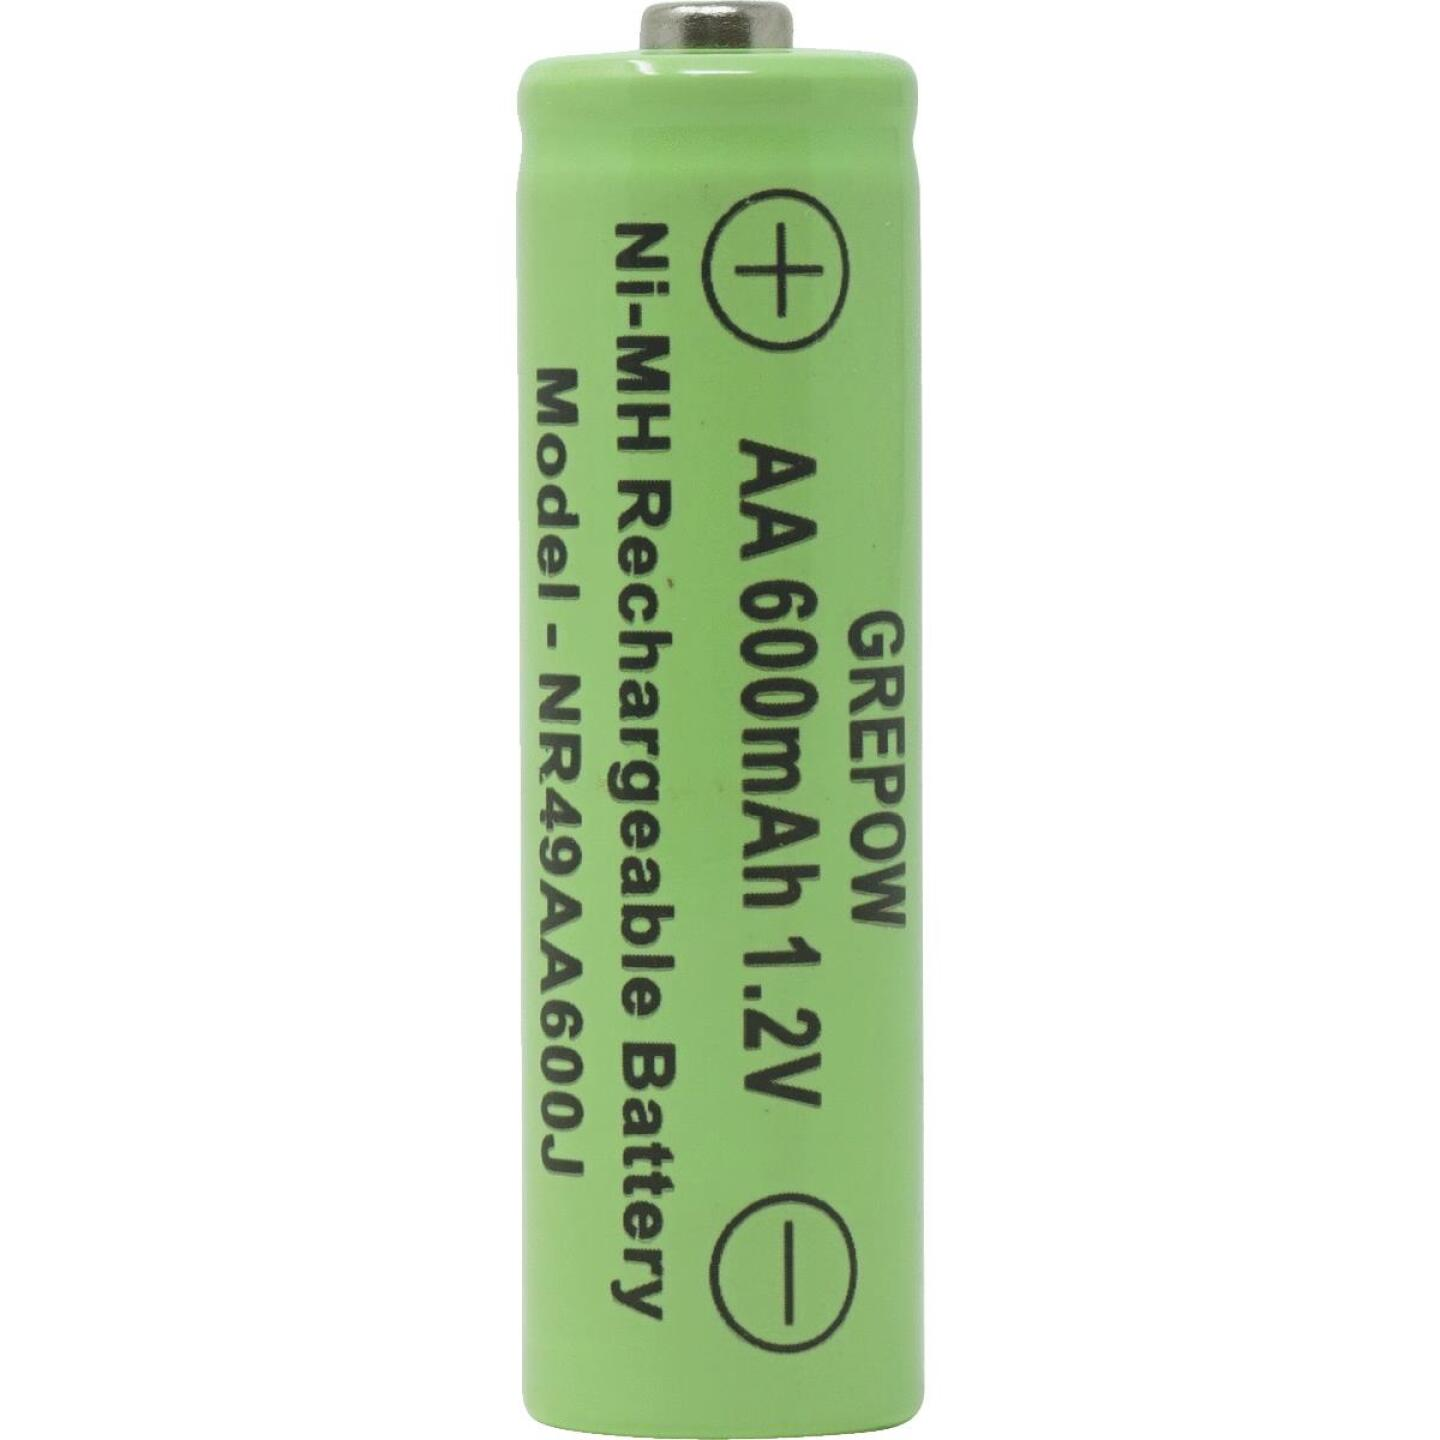 Moonrays Solar Rechargable AA Replacement Battery (4-Pack) Image 1